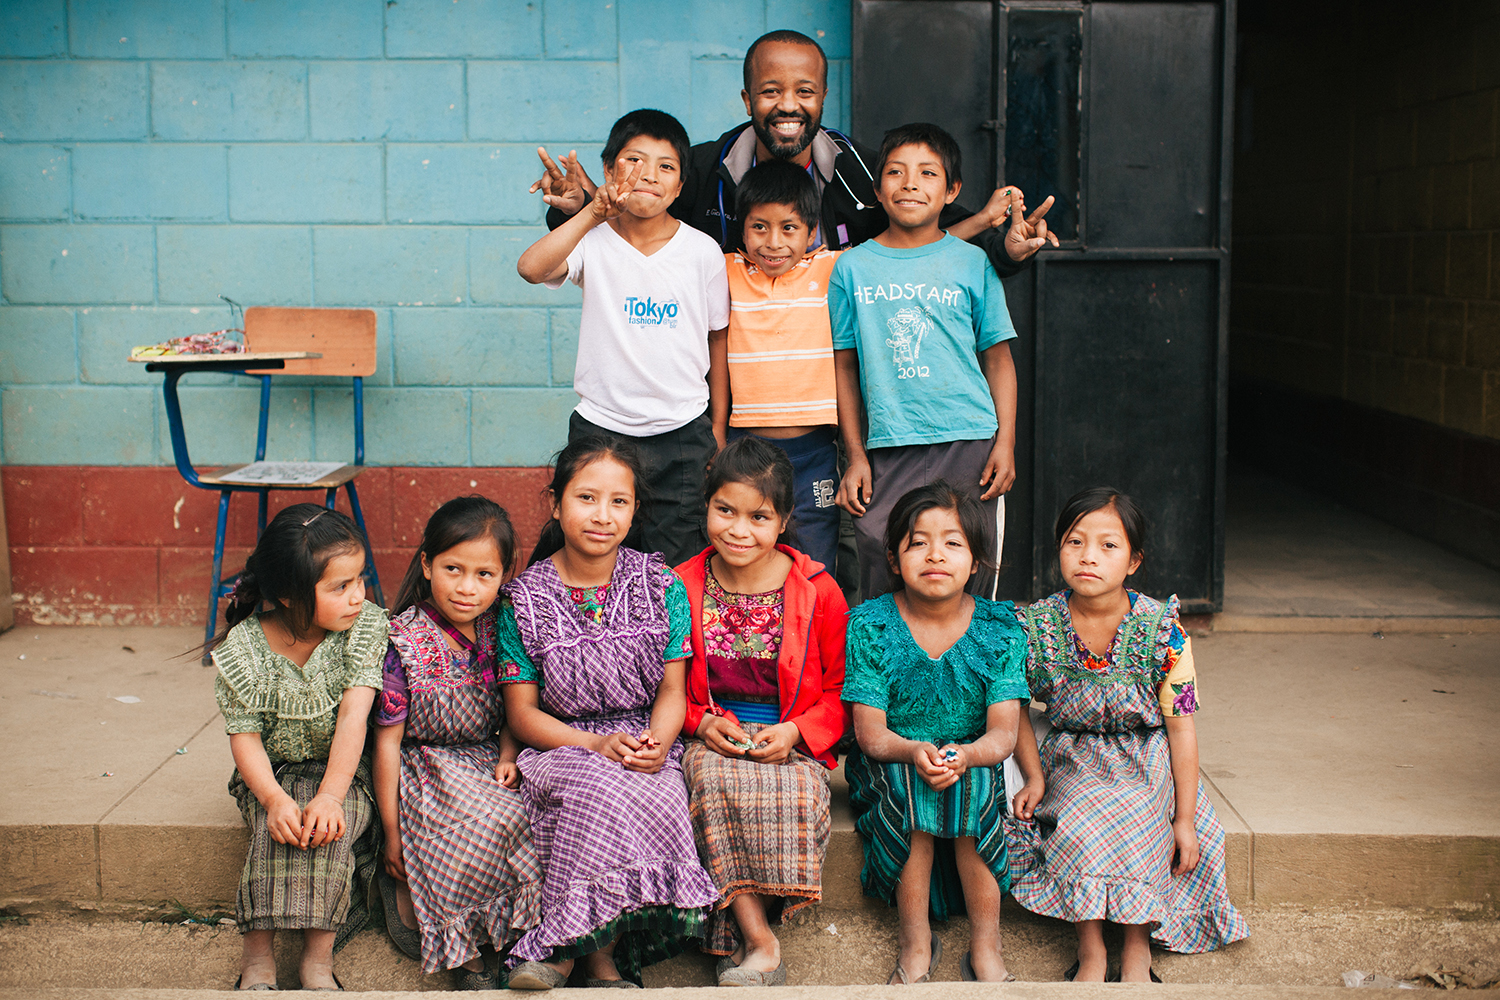 La Pila, Guatemala - Donate to support our efforts to provide healthcare, education, and infrastructure to this community in need.